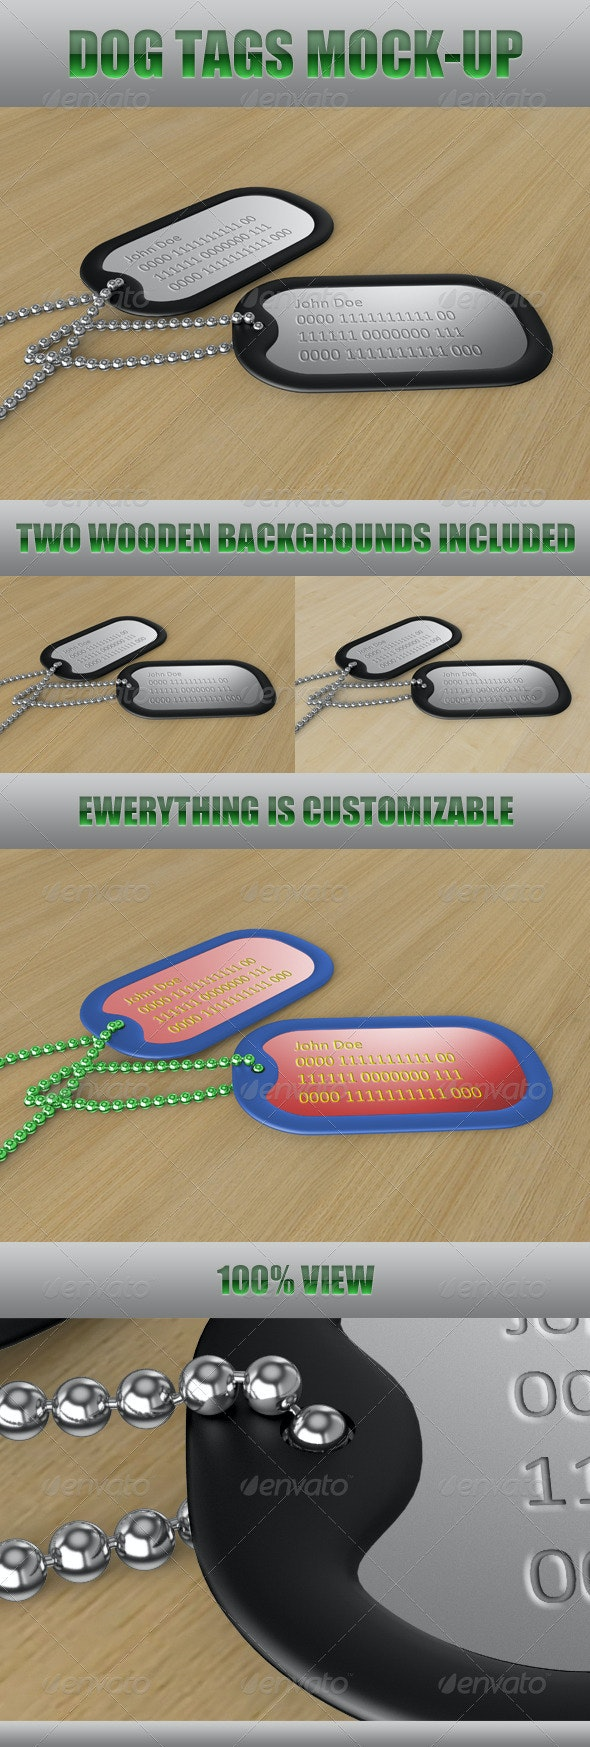 Dog Tags Mock-Up - Miscellaneous Product Mock-Ups